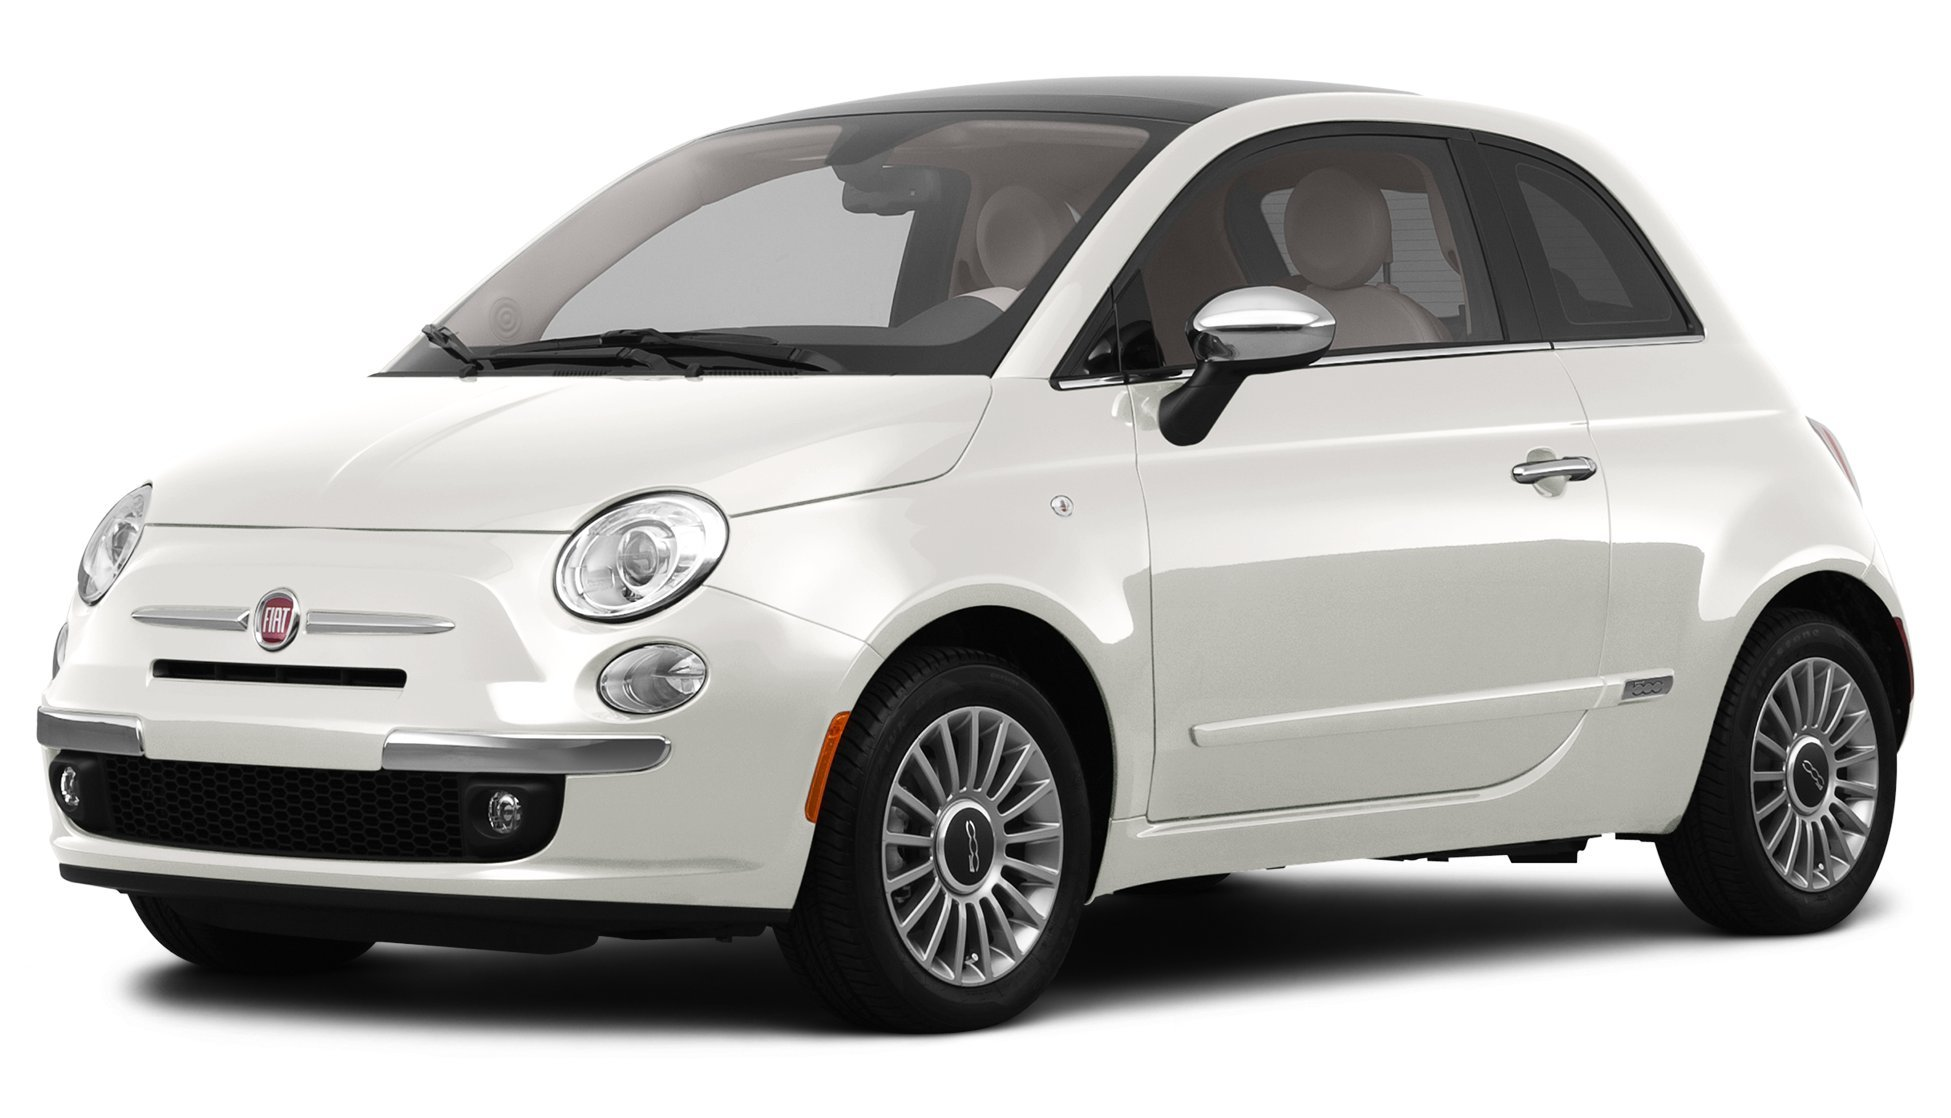 4db6e92725cf Amazon.com: 2012 Fiat 500 Reviews, Images, and Specs: Vehicles